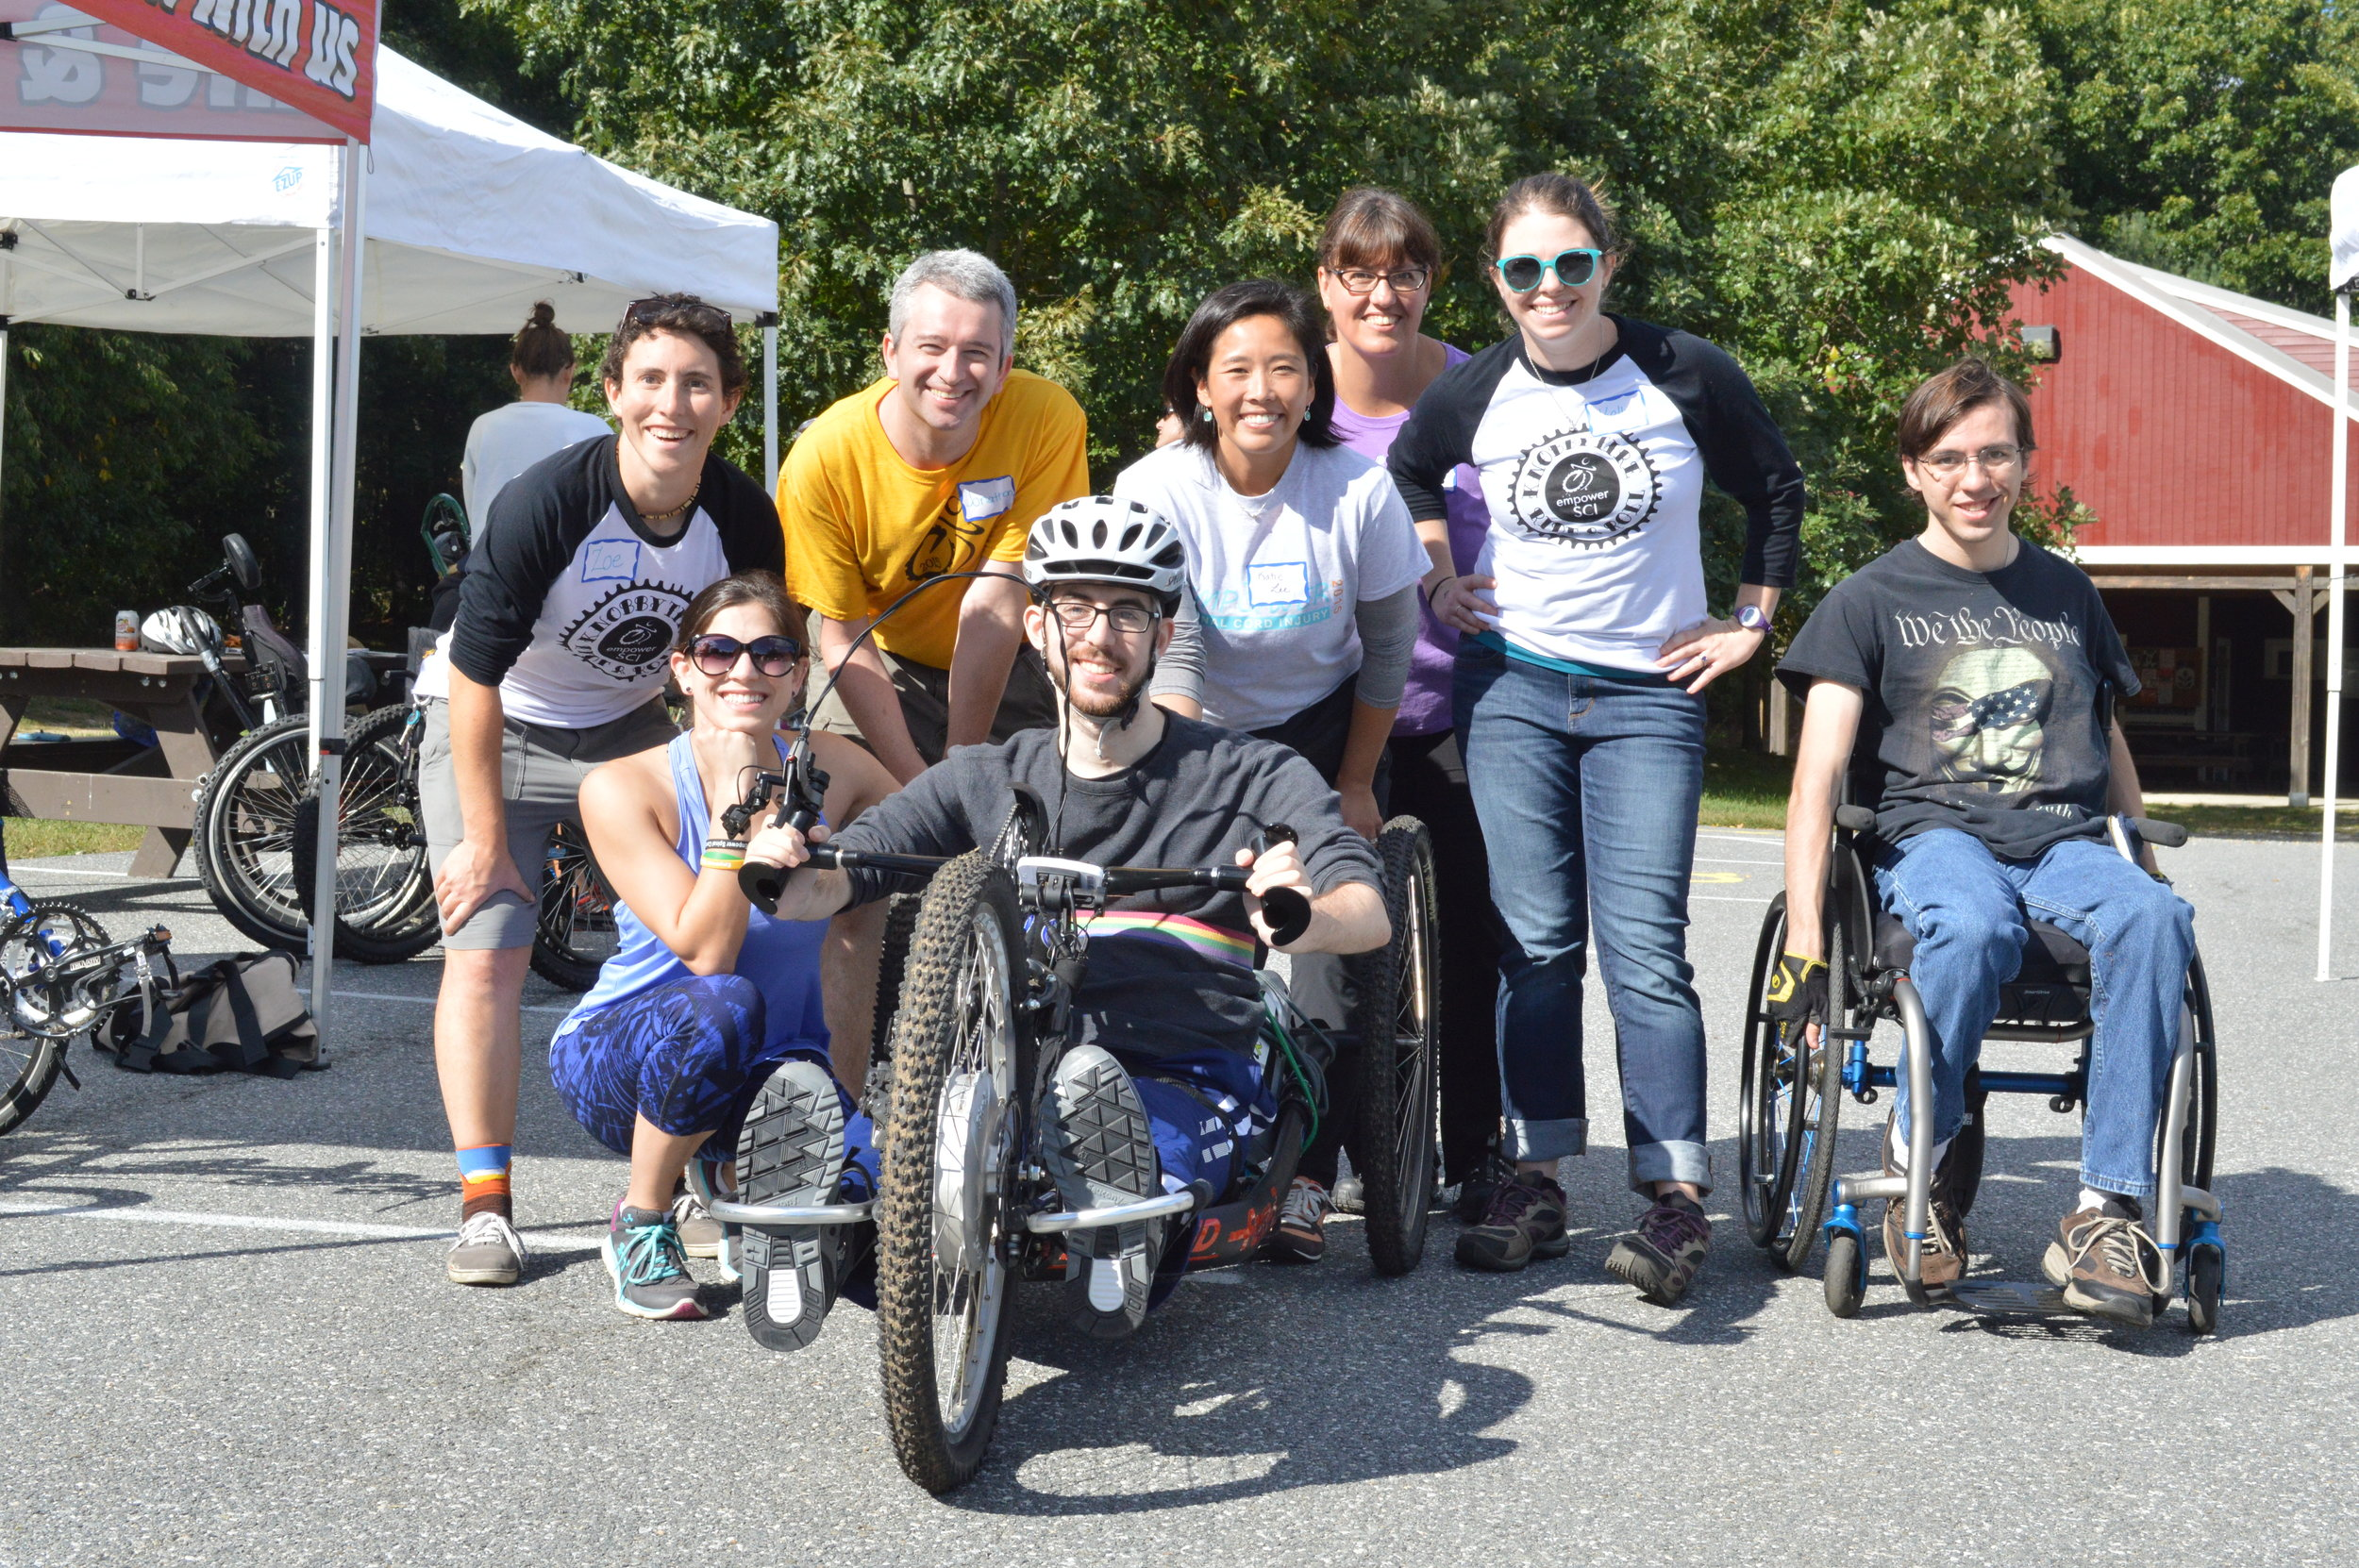 All ready to go!  Mike with his 2016 Knobby Tire volunteer team members Zoe, Jonathan, Katie Lee, and Kelly.